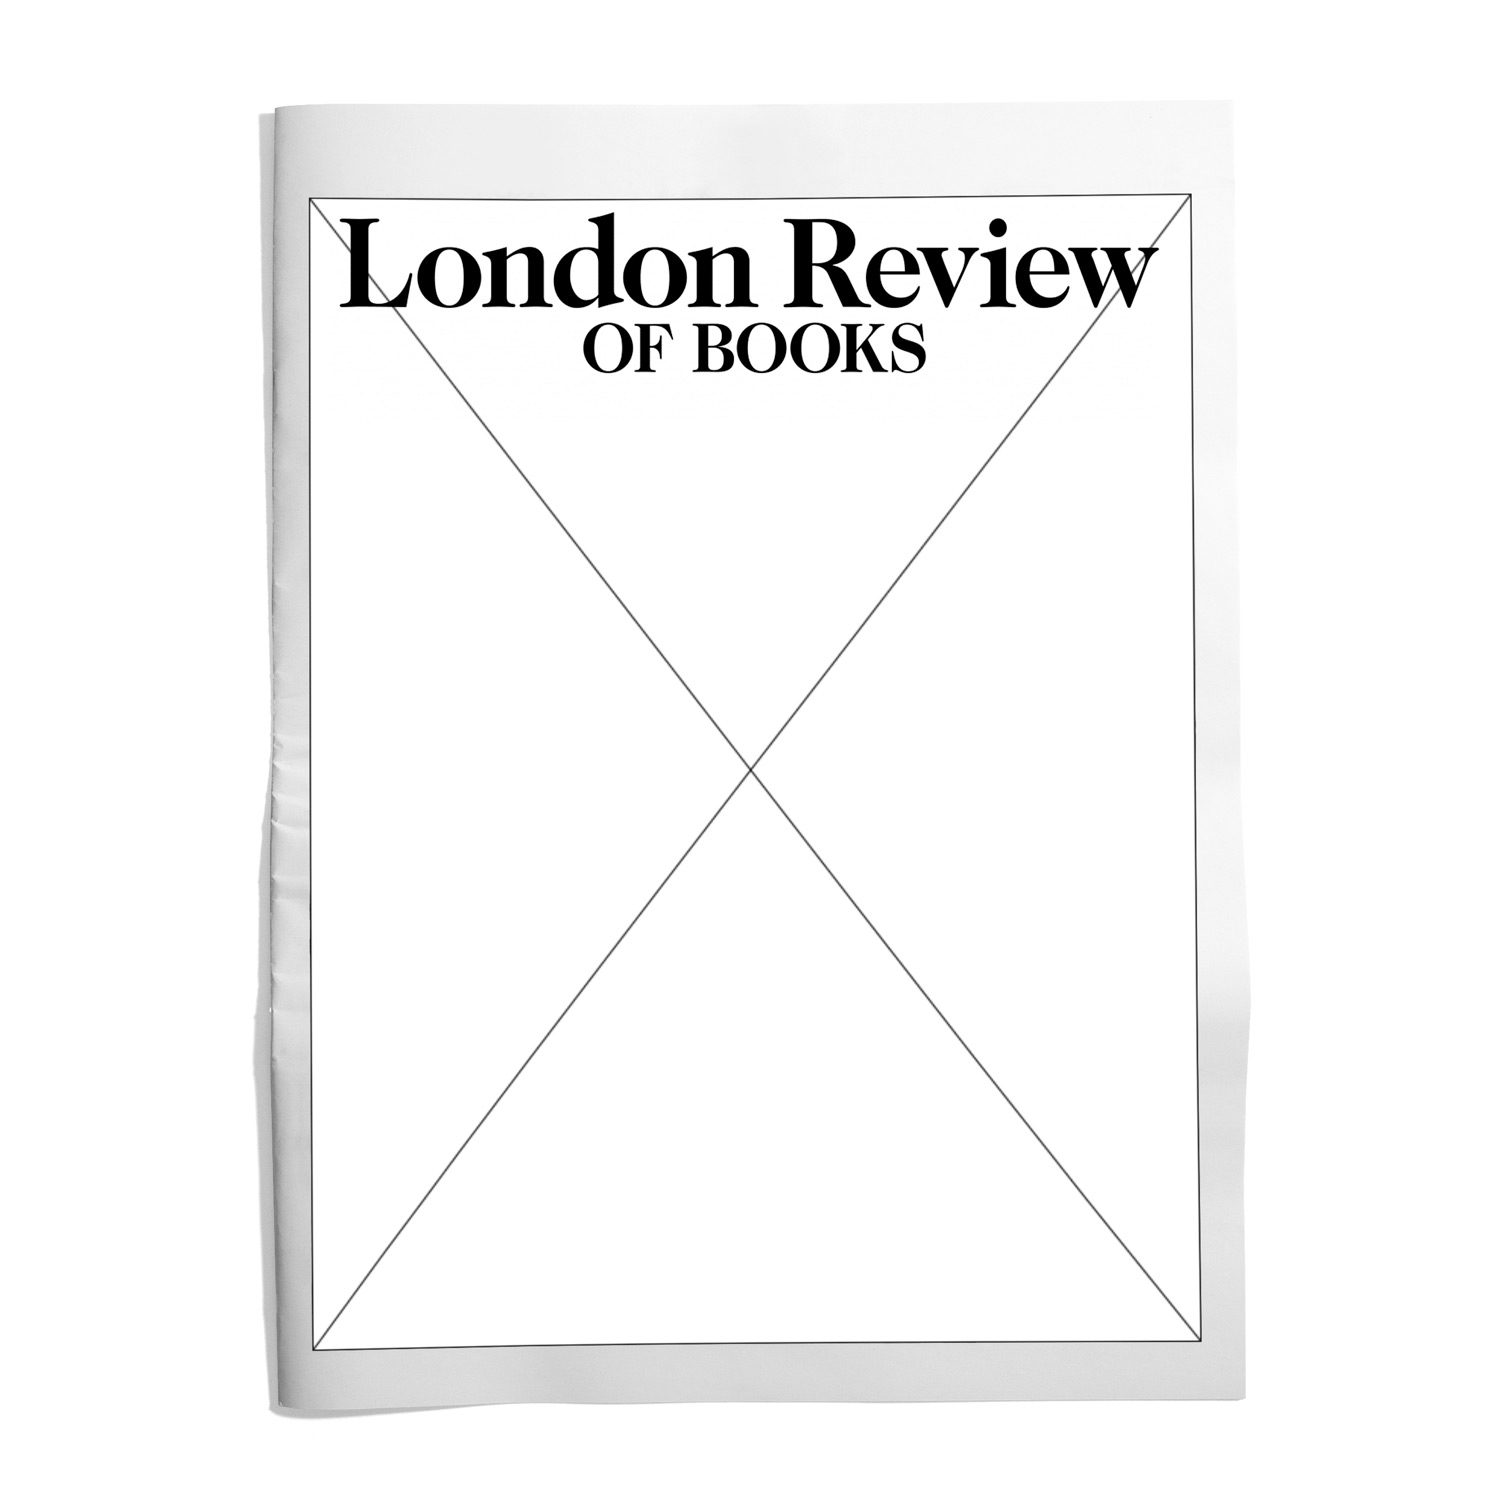 The London Review of Books 42/19 8.10.2020